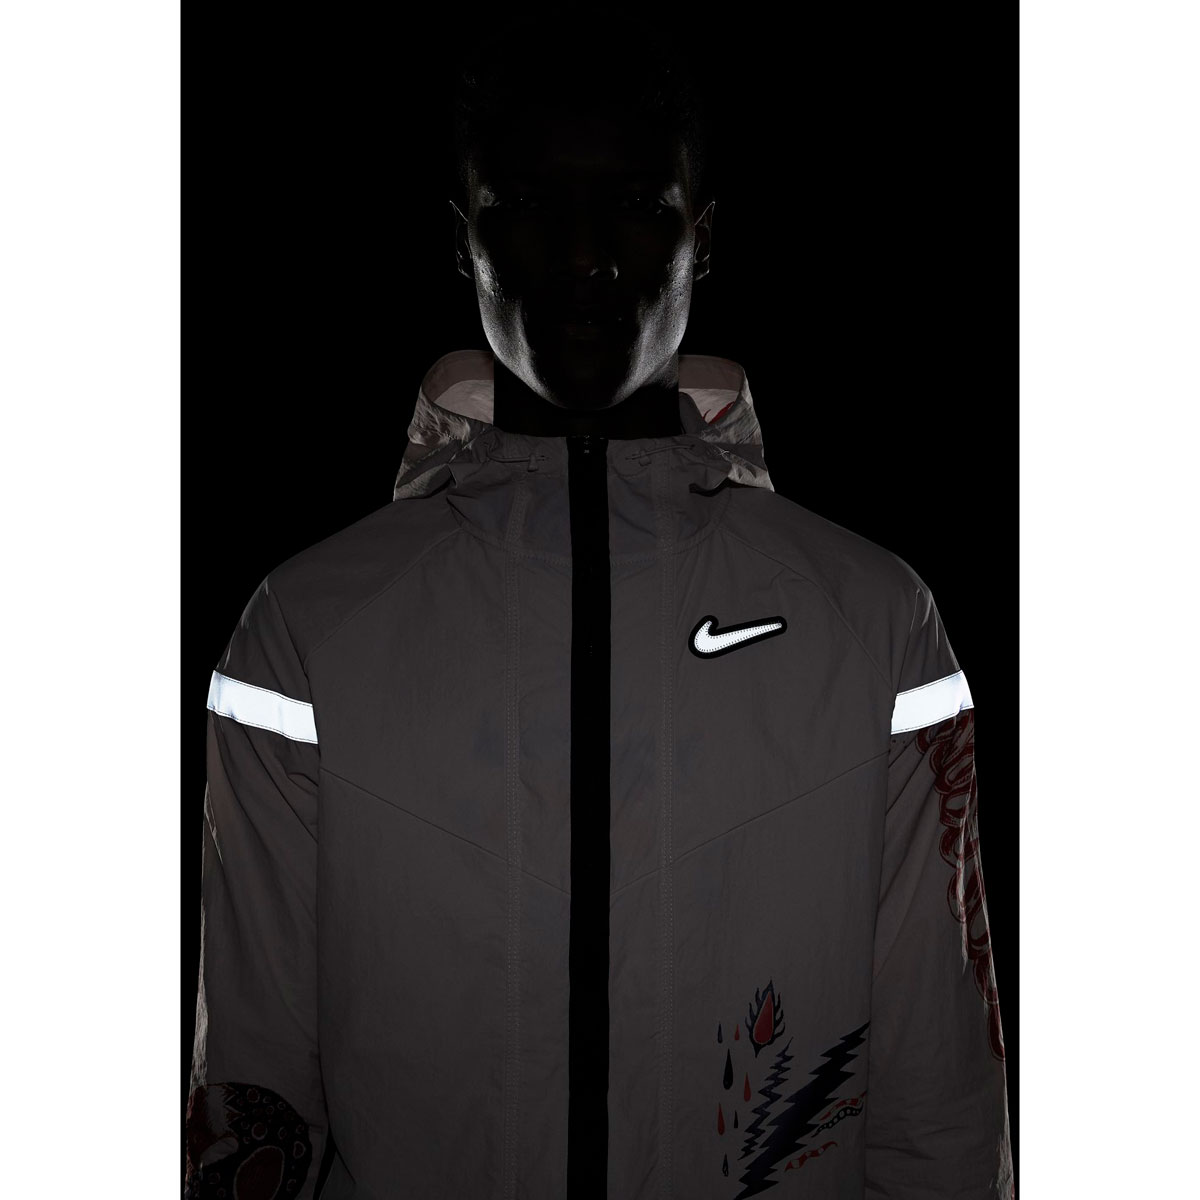 Men's Nike Windrunner Wild Run Running Jacket - Color: Barely Rose/Reflective Silver - Size: S, Barely Rose/Reflective Silver, large, image 4